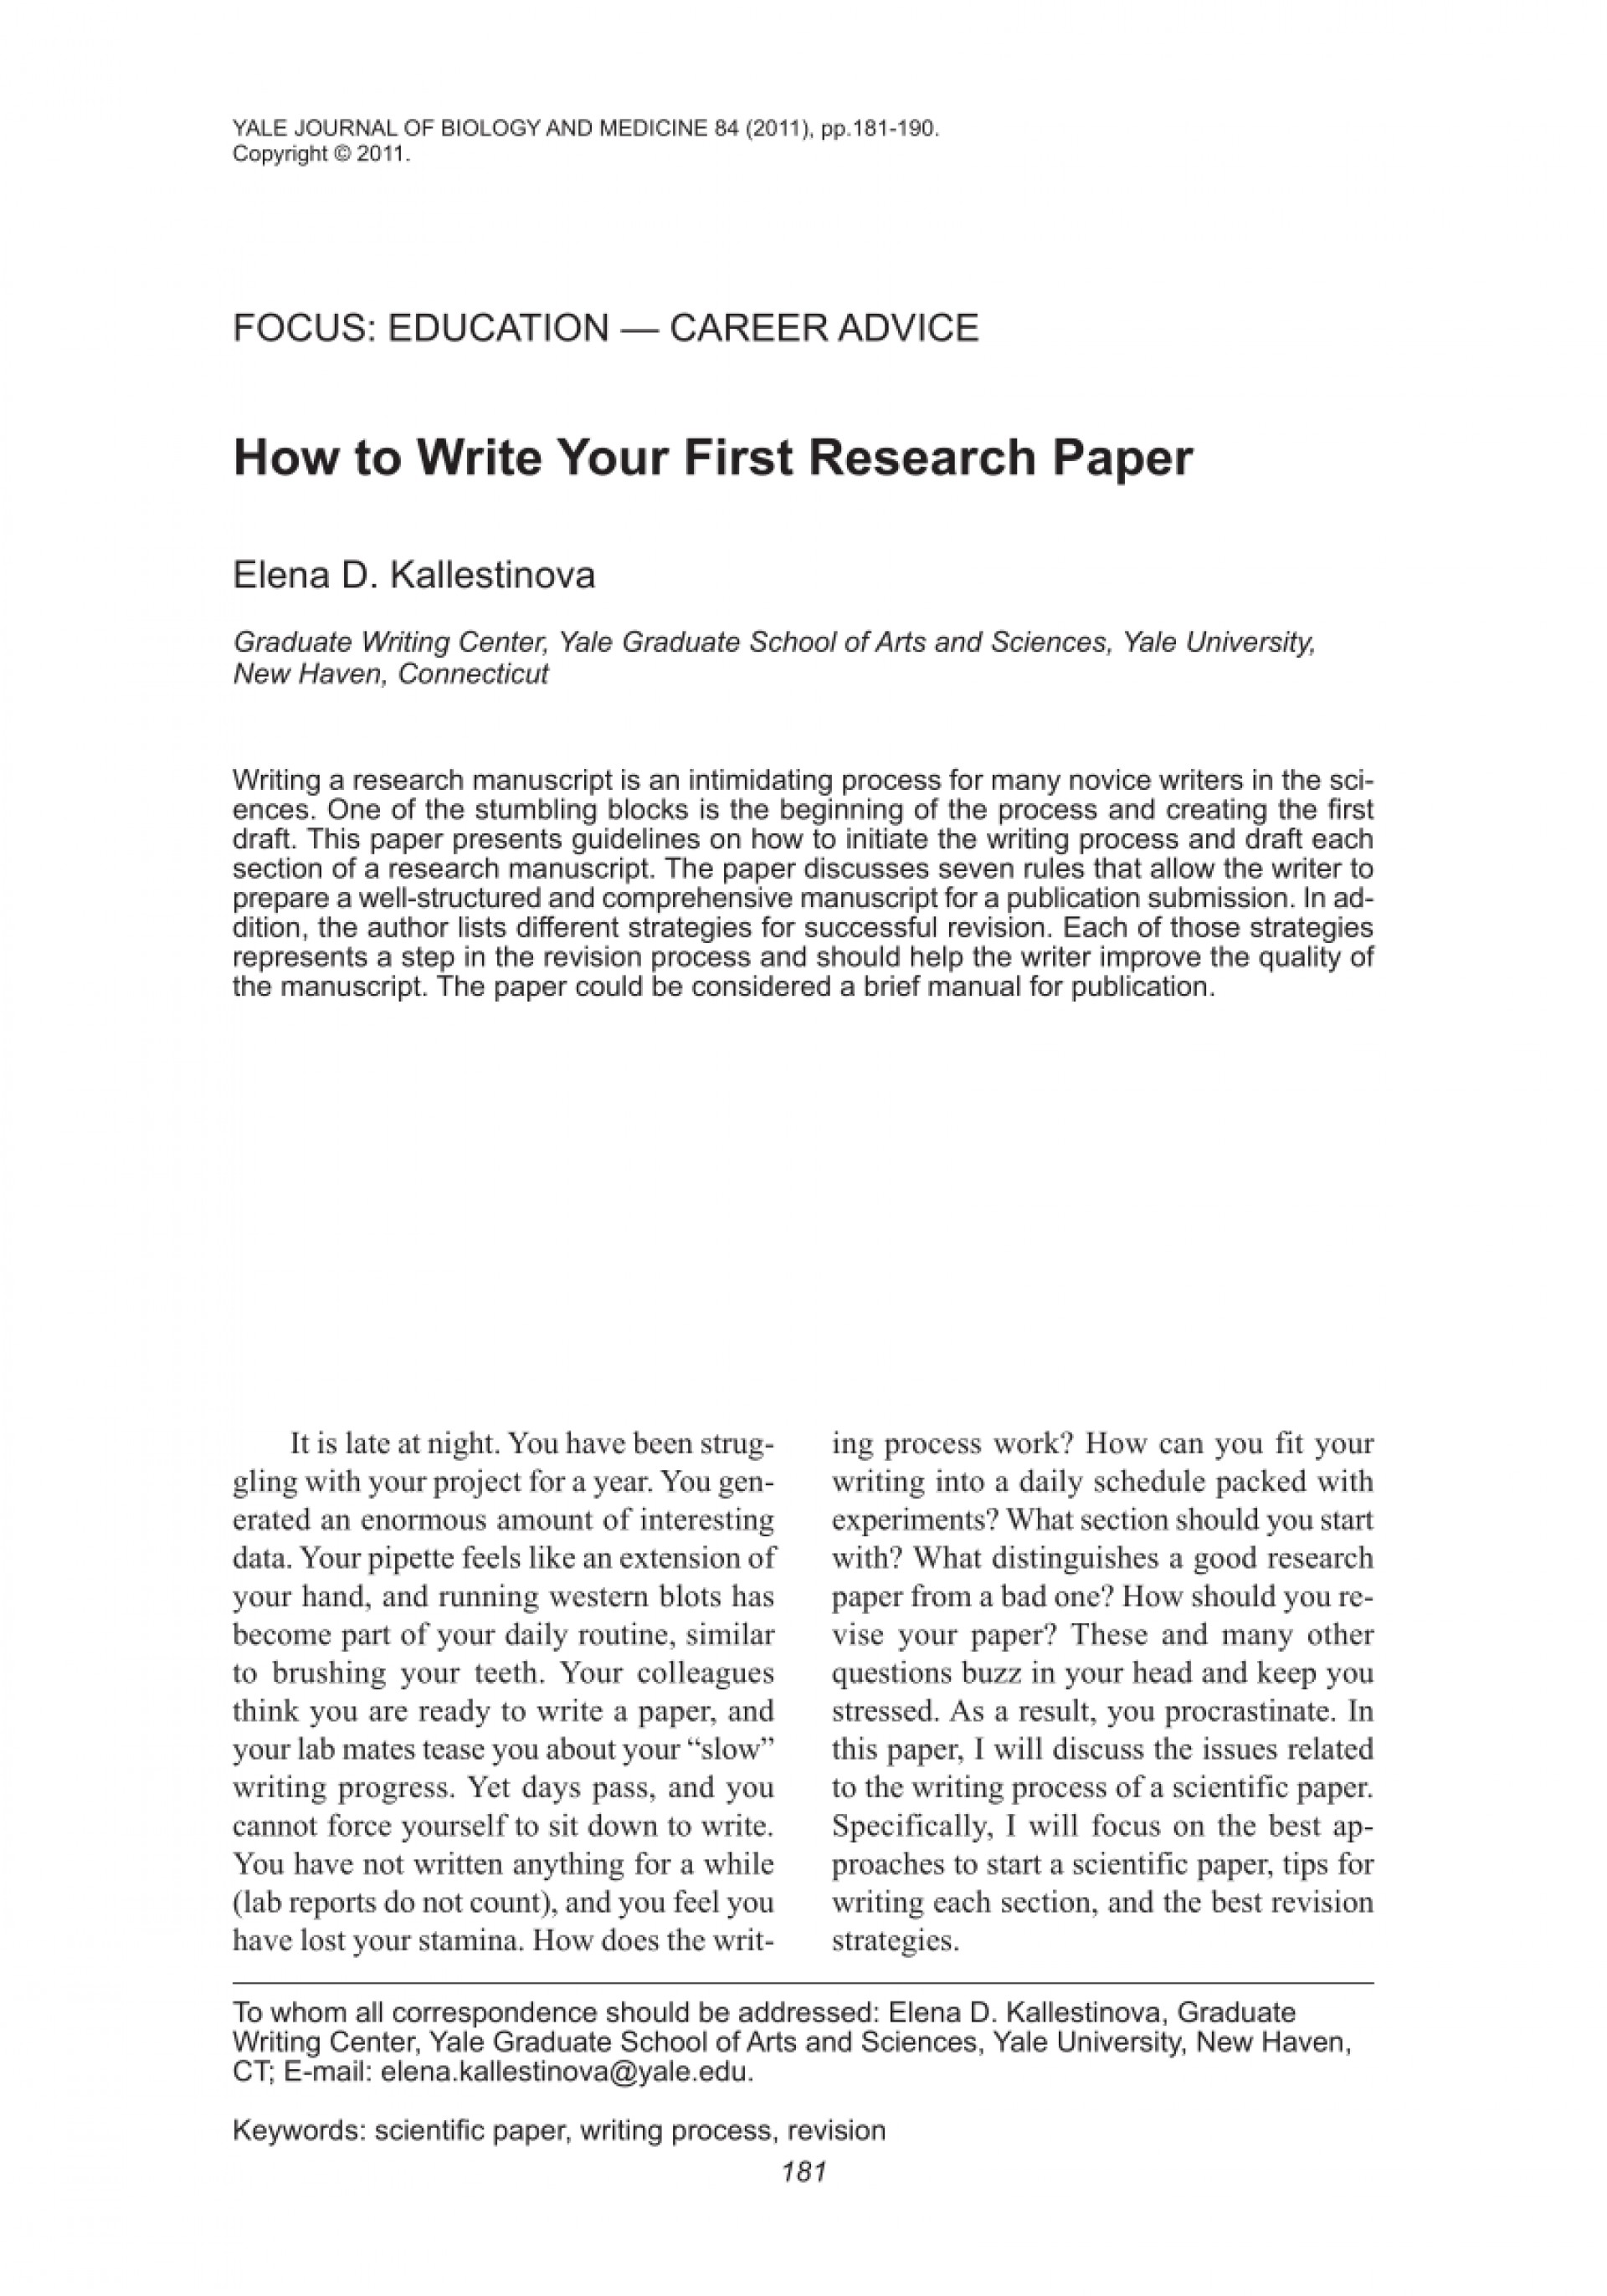 009 Largepreview Research Paper How To Breathtaking Write A Hook Reference Conclusion For Pdf 1920